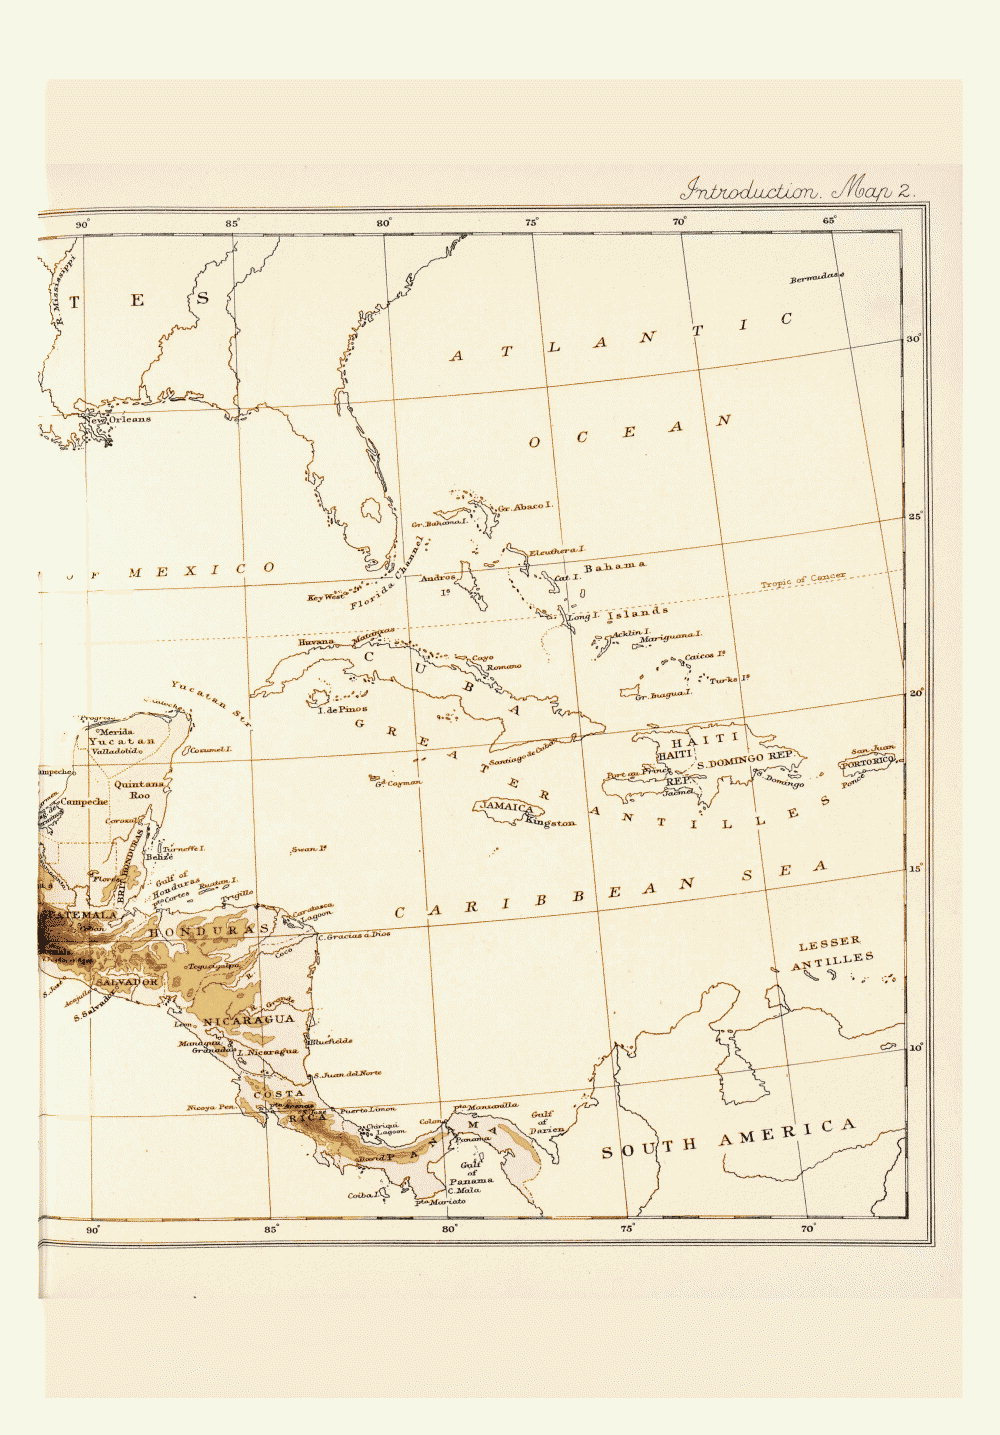 Maps of Central America,  Image number:bca_01_00_00_179